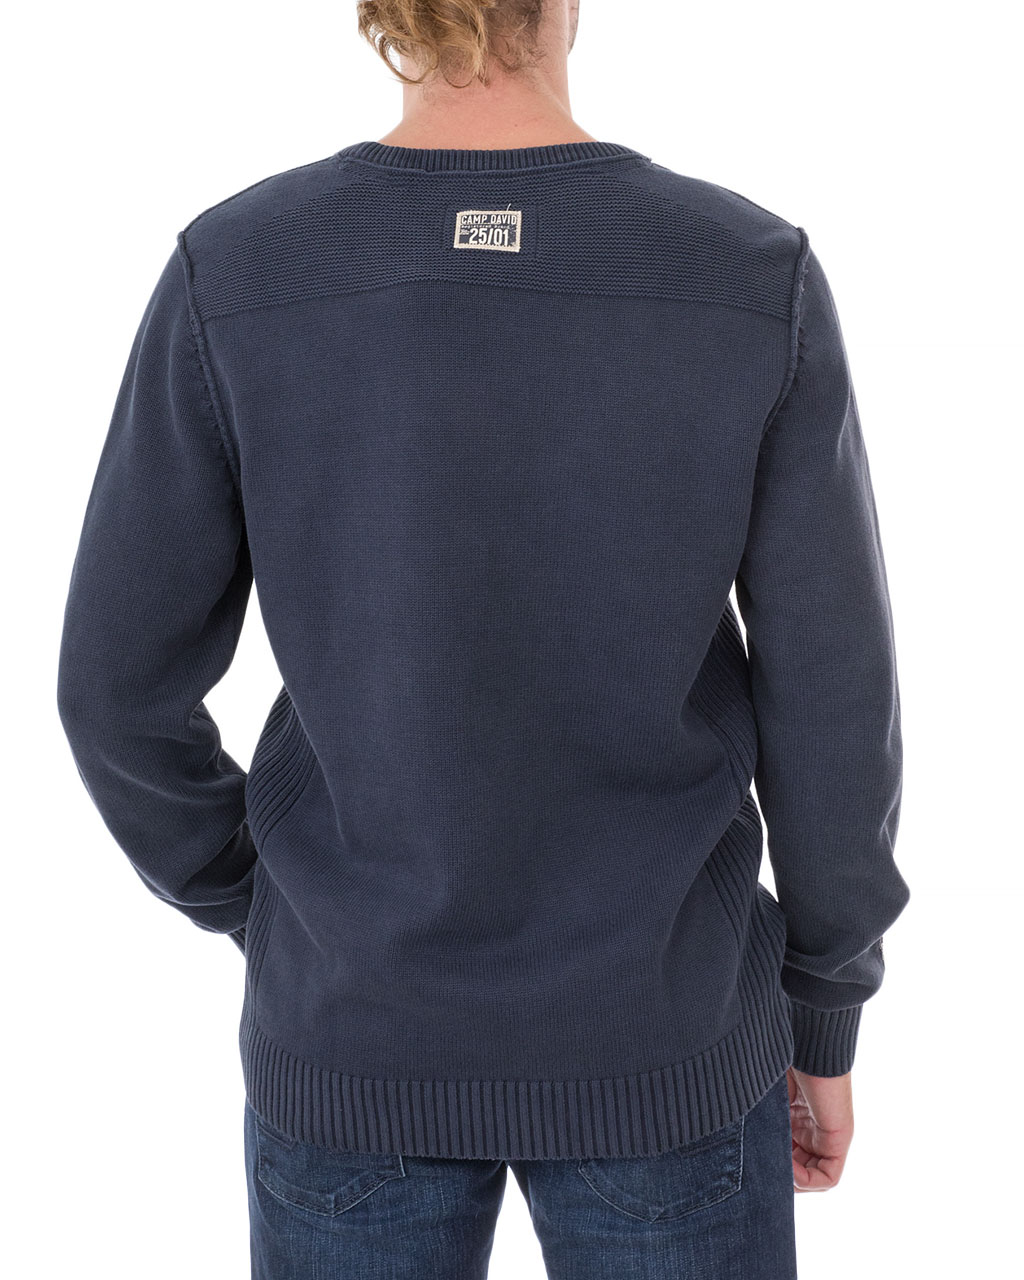 Men's jumper 1809-4770/8-92-синий (6)